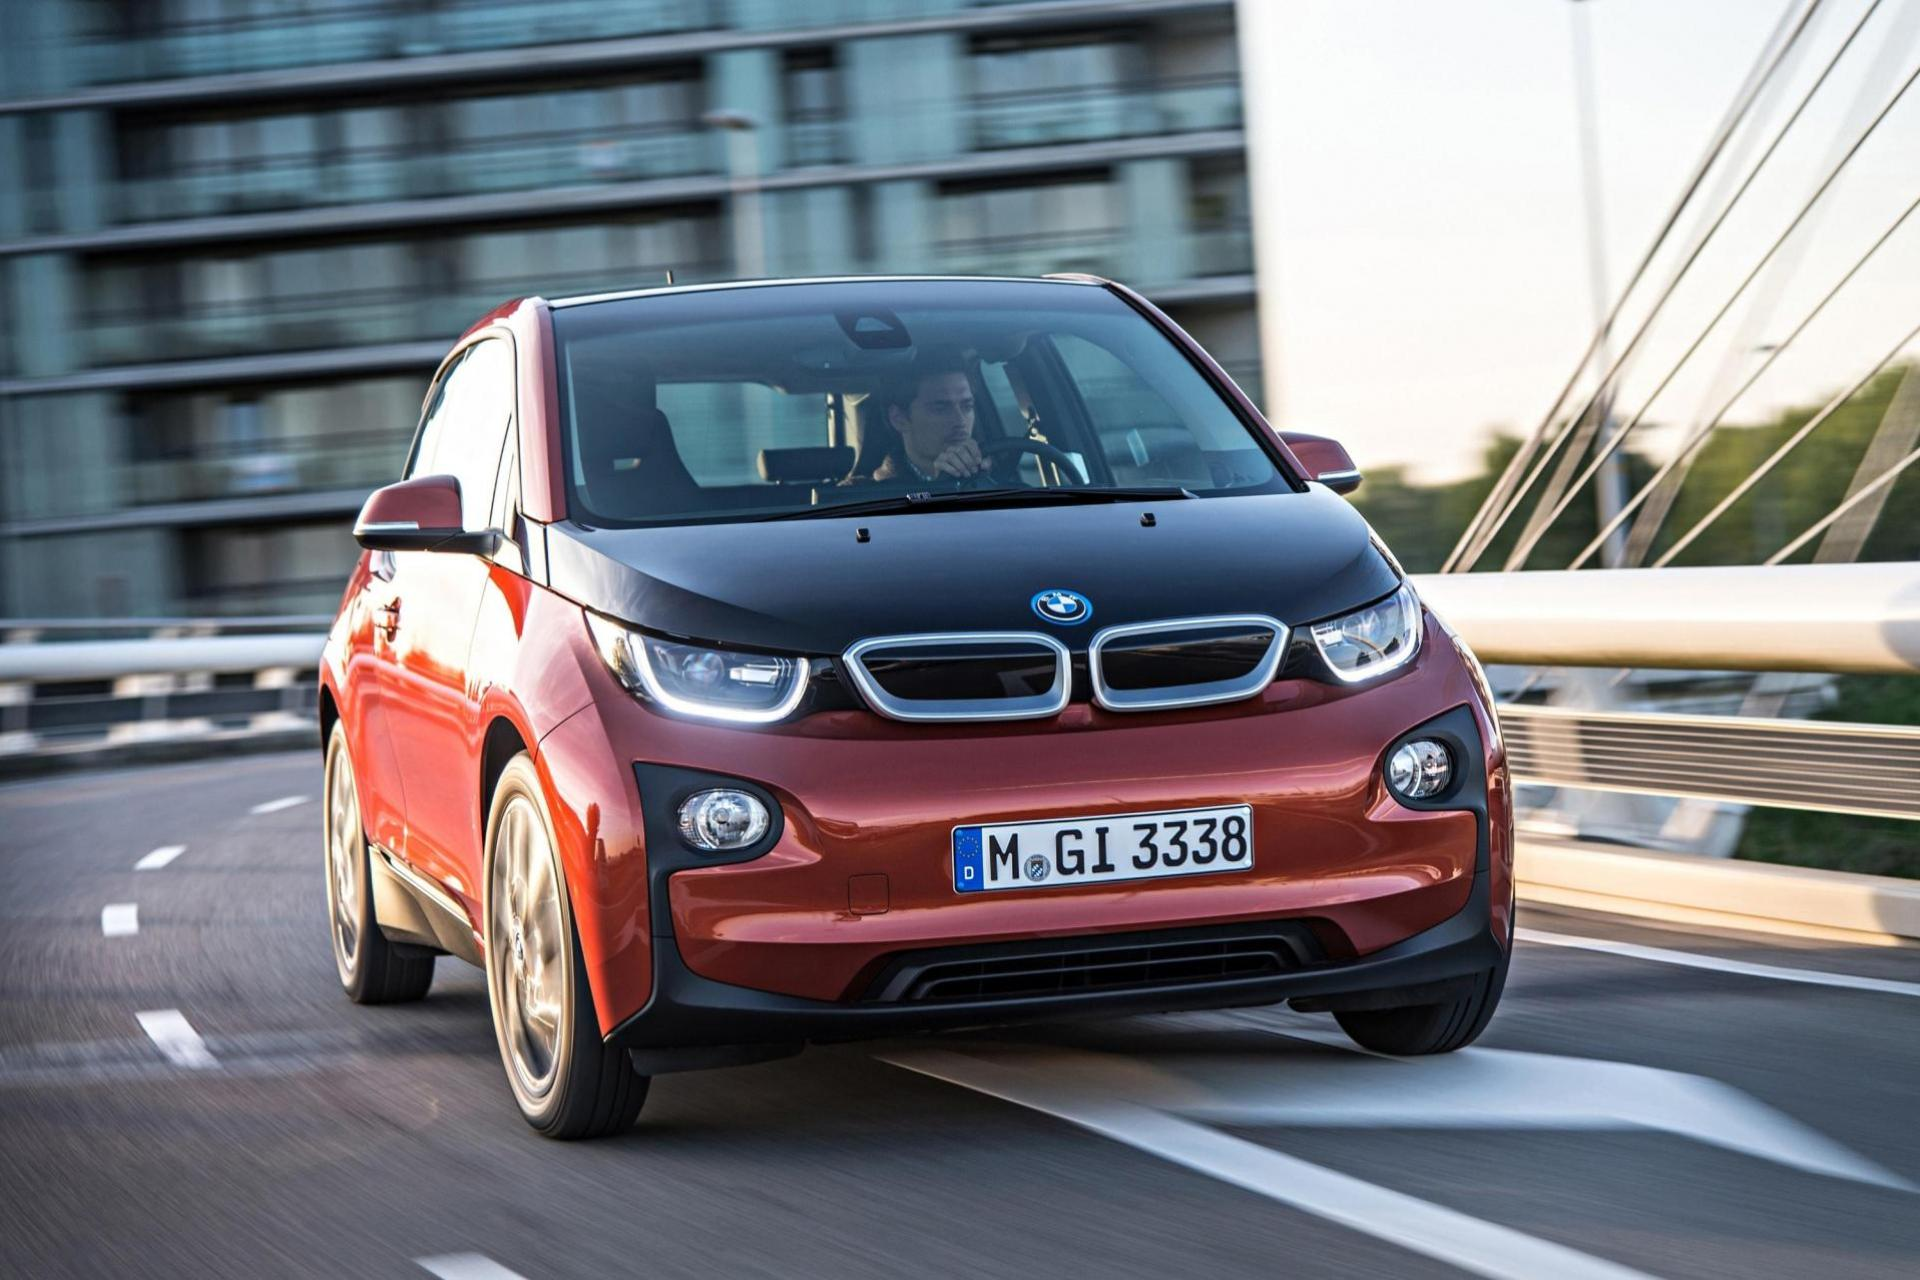 The i3 pioneered the use of recycled interior materials.